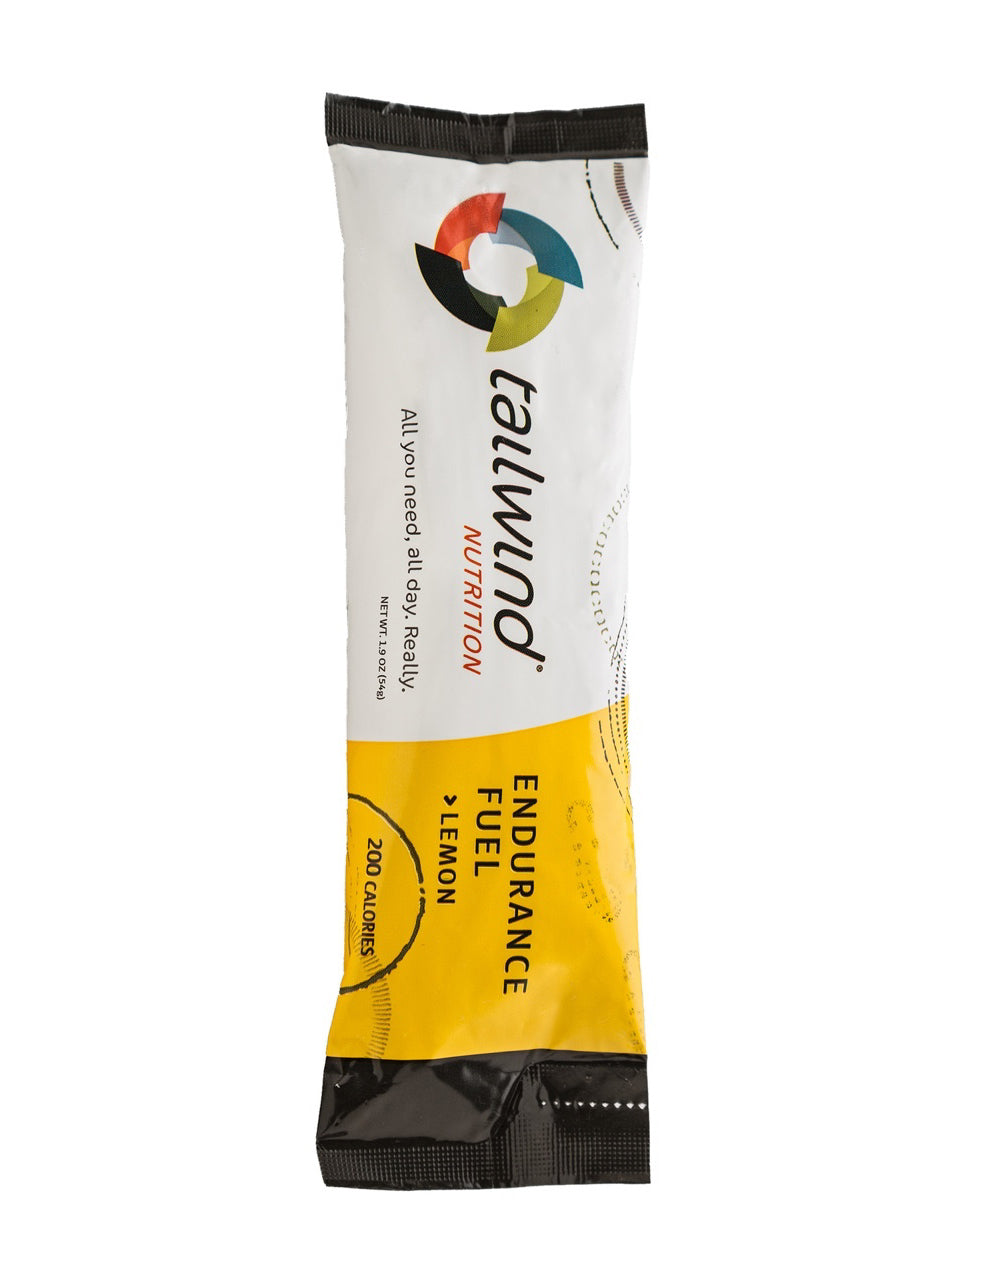 Endurance Fuel Lemon - Single Serve